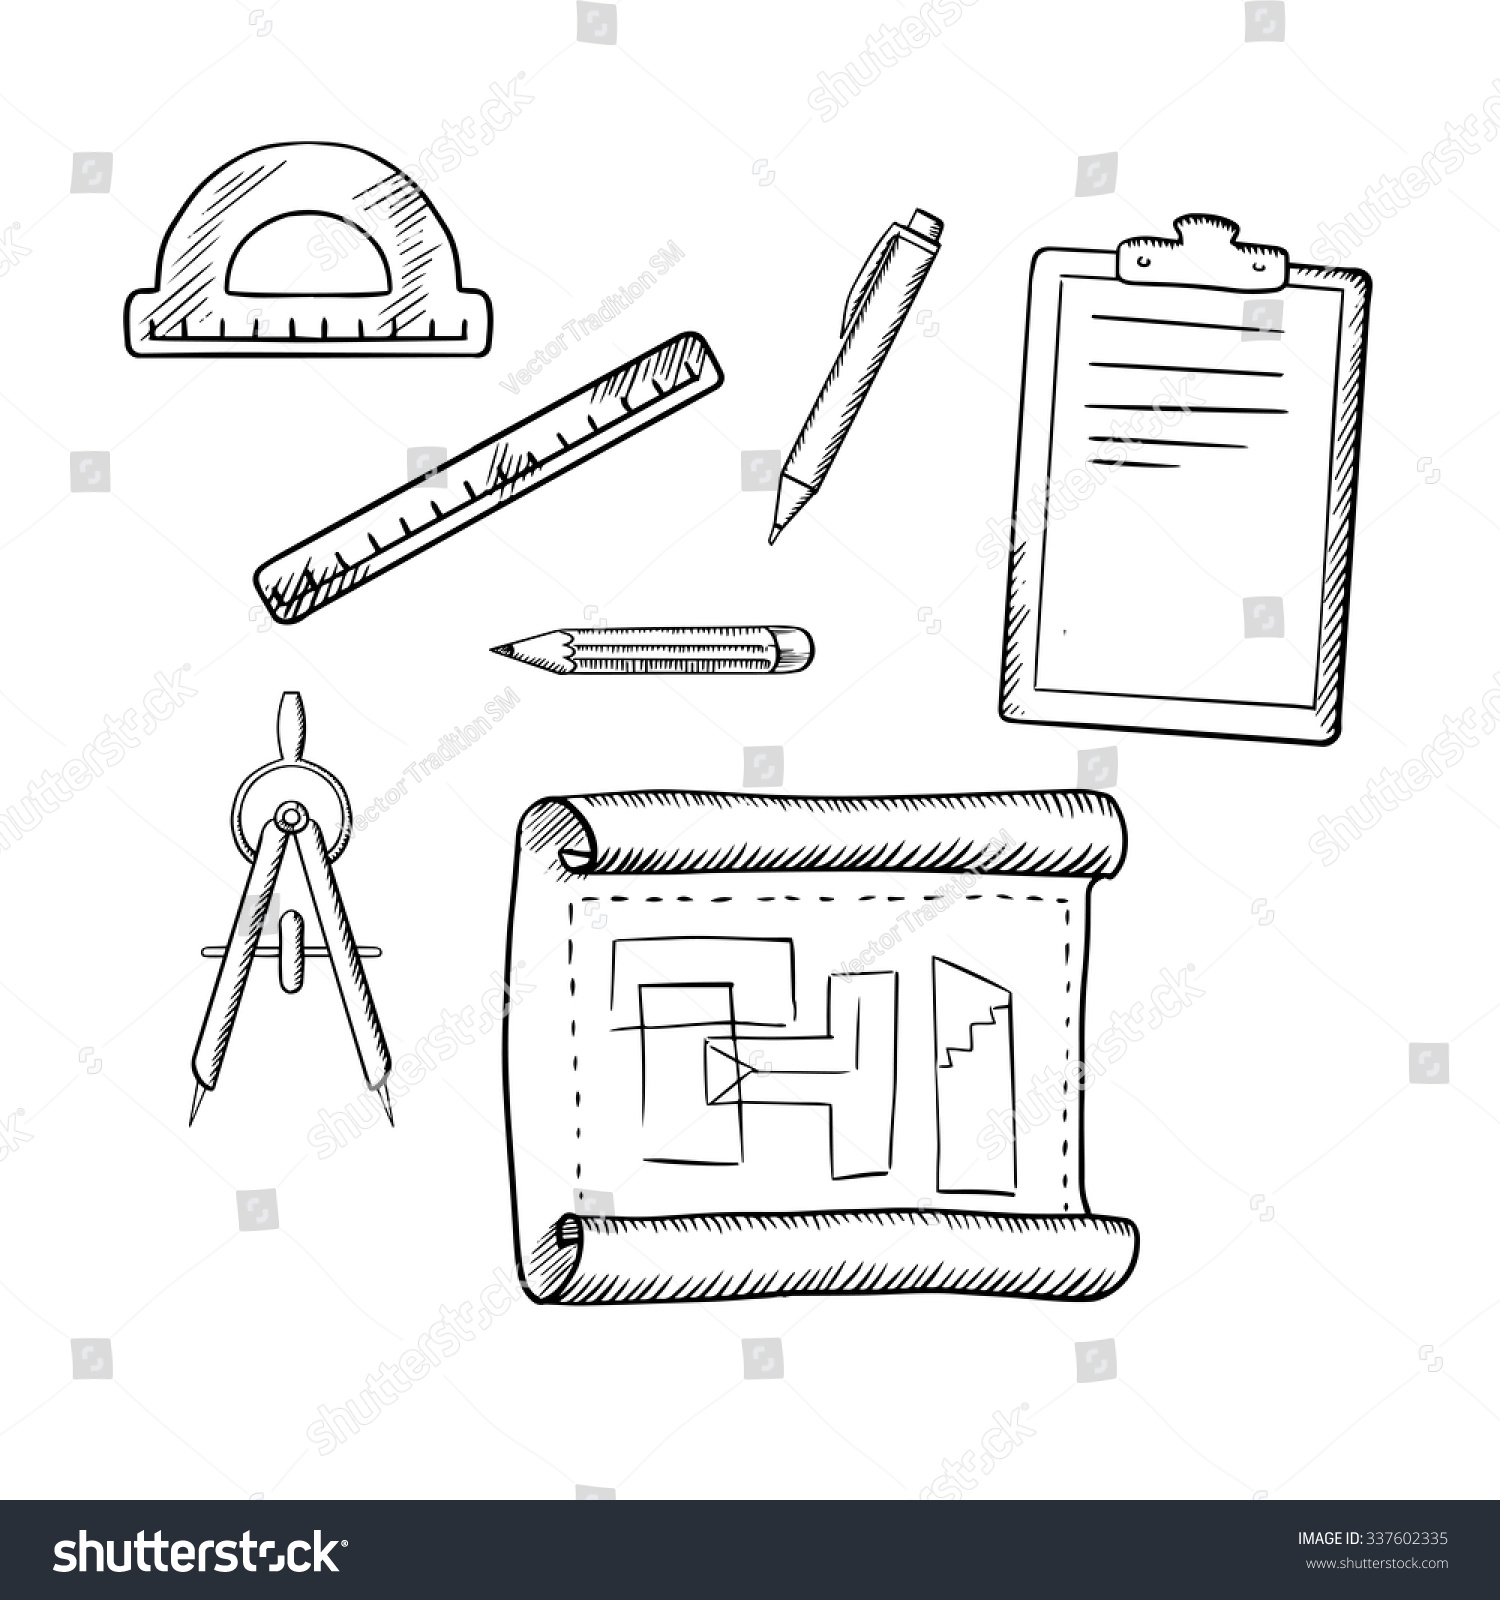 Architect Drawing Compasses Pencil Pen Ruler Stock Photo (Photo ...